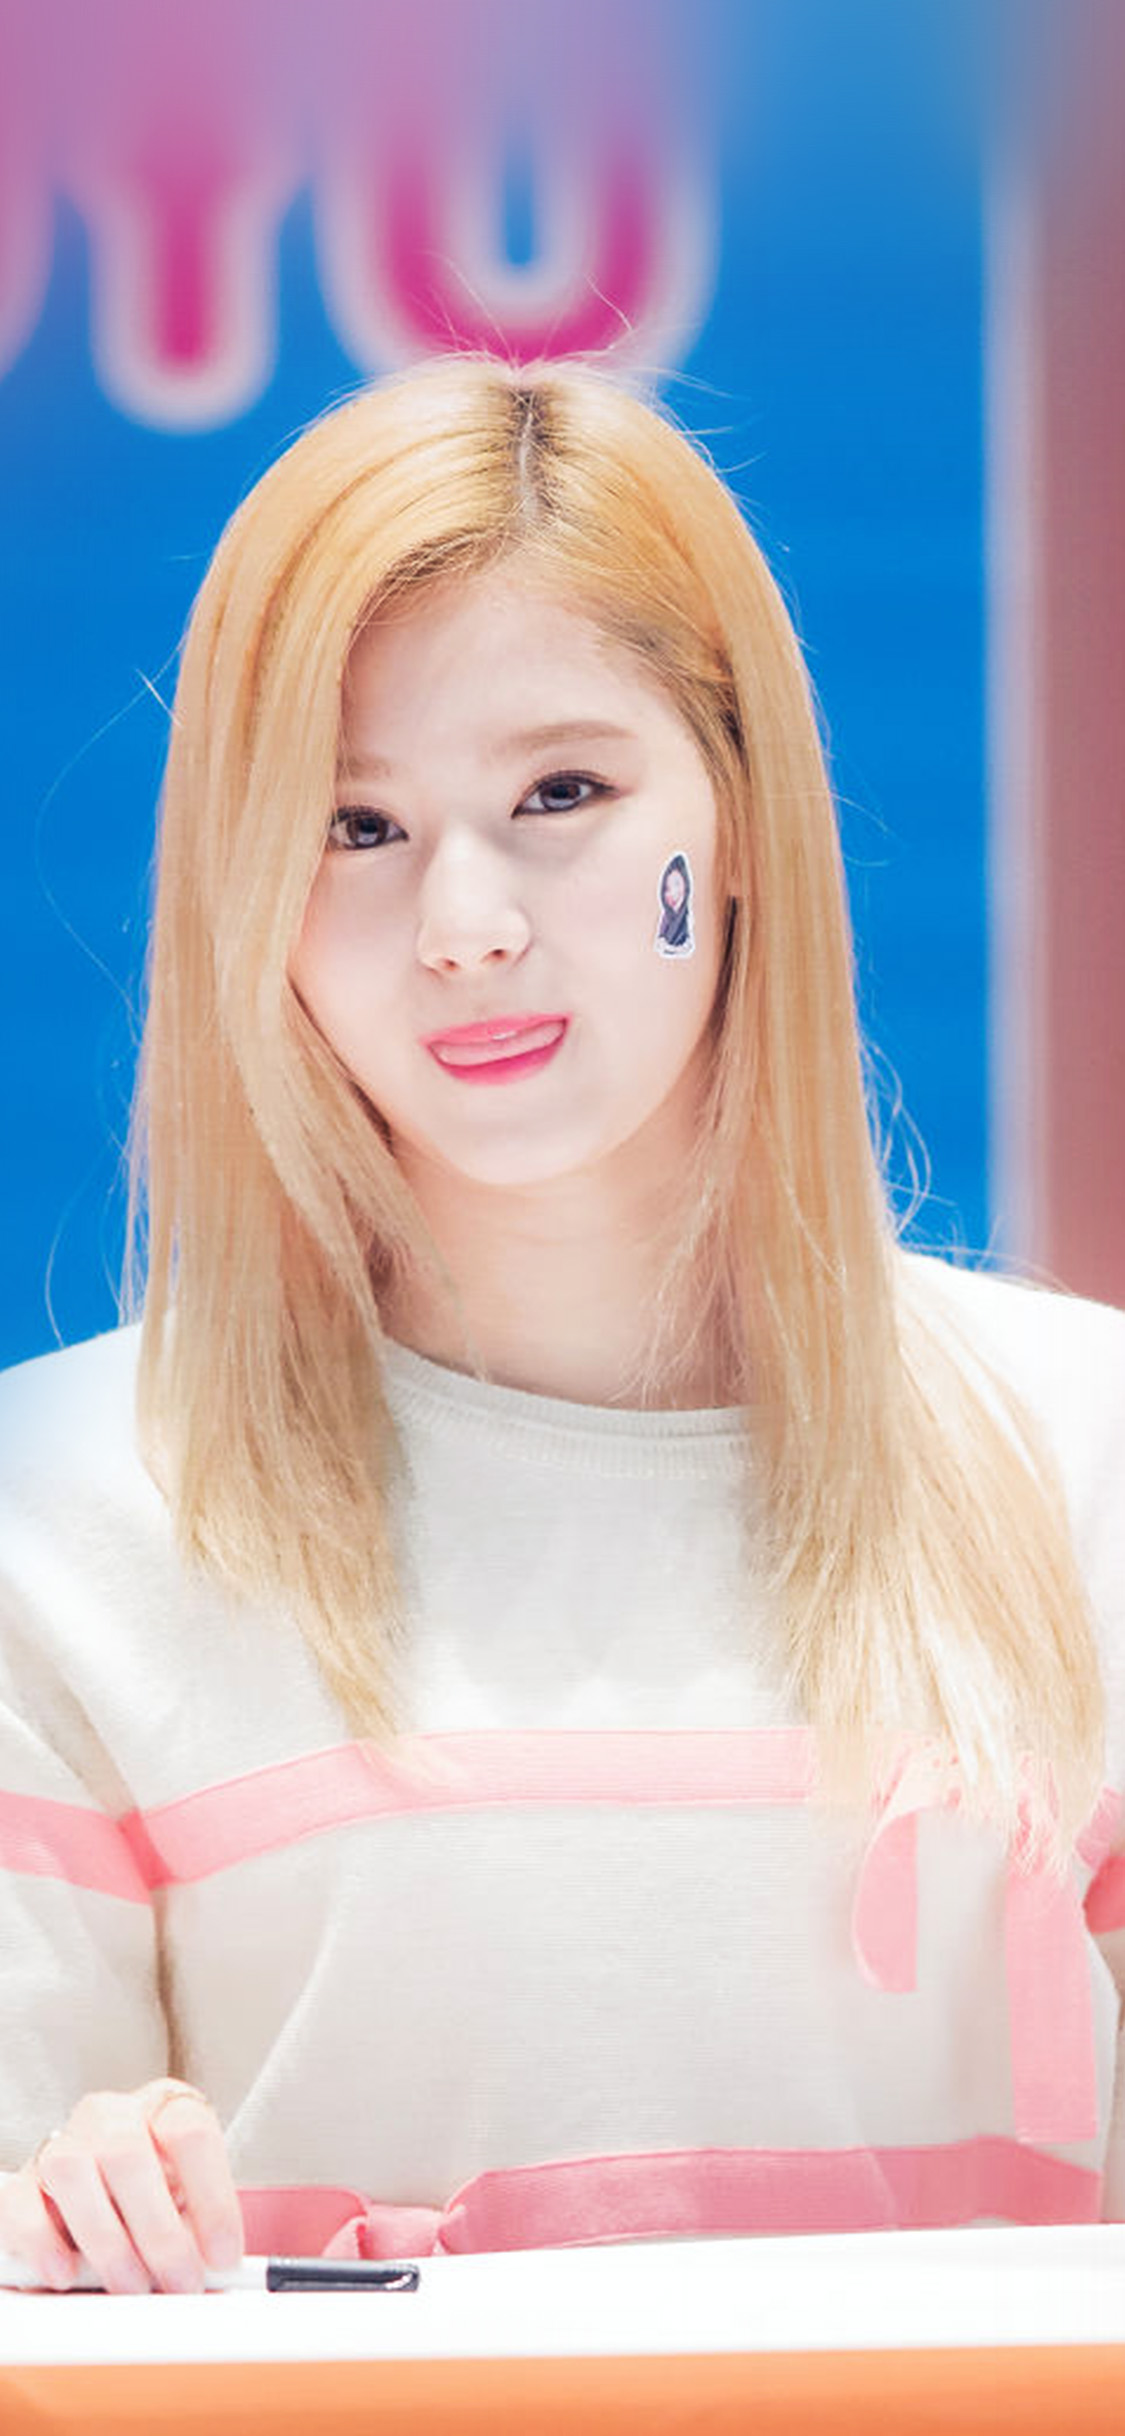 iPhonexpapers.com-Apple-iPhone-wallpaper-hp73-sana-twice-girl-kpop-group-cute